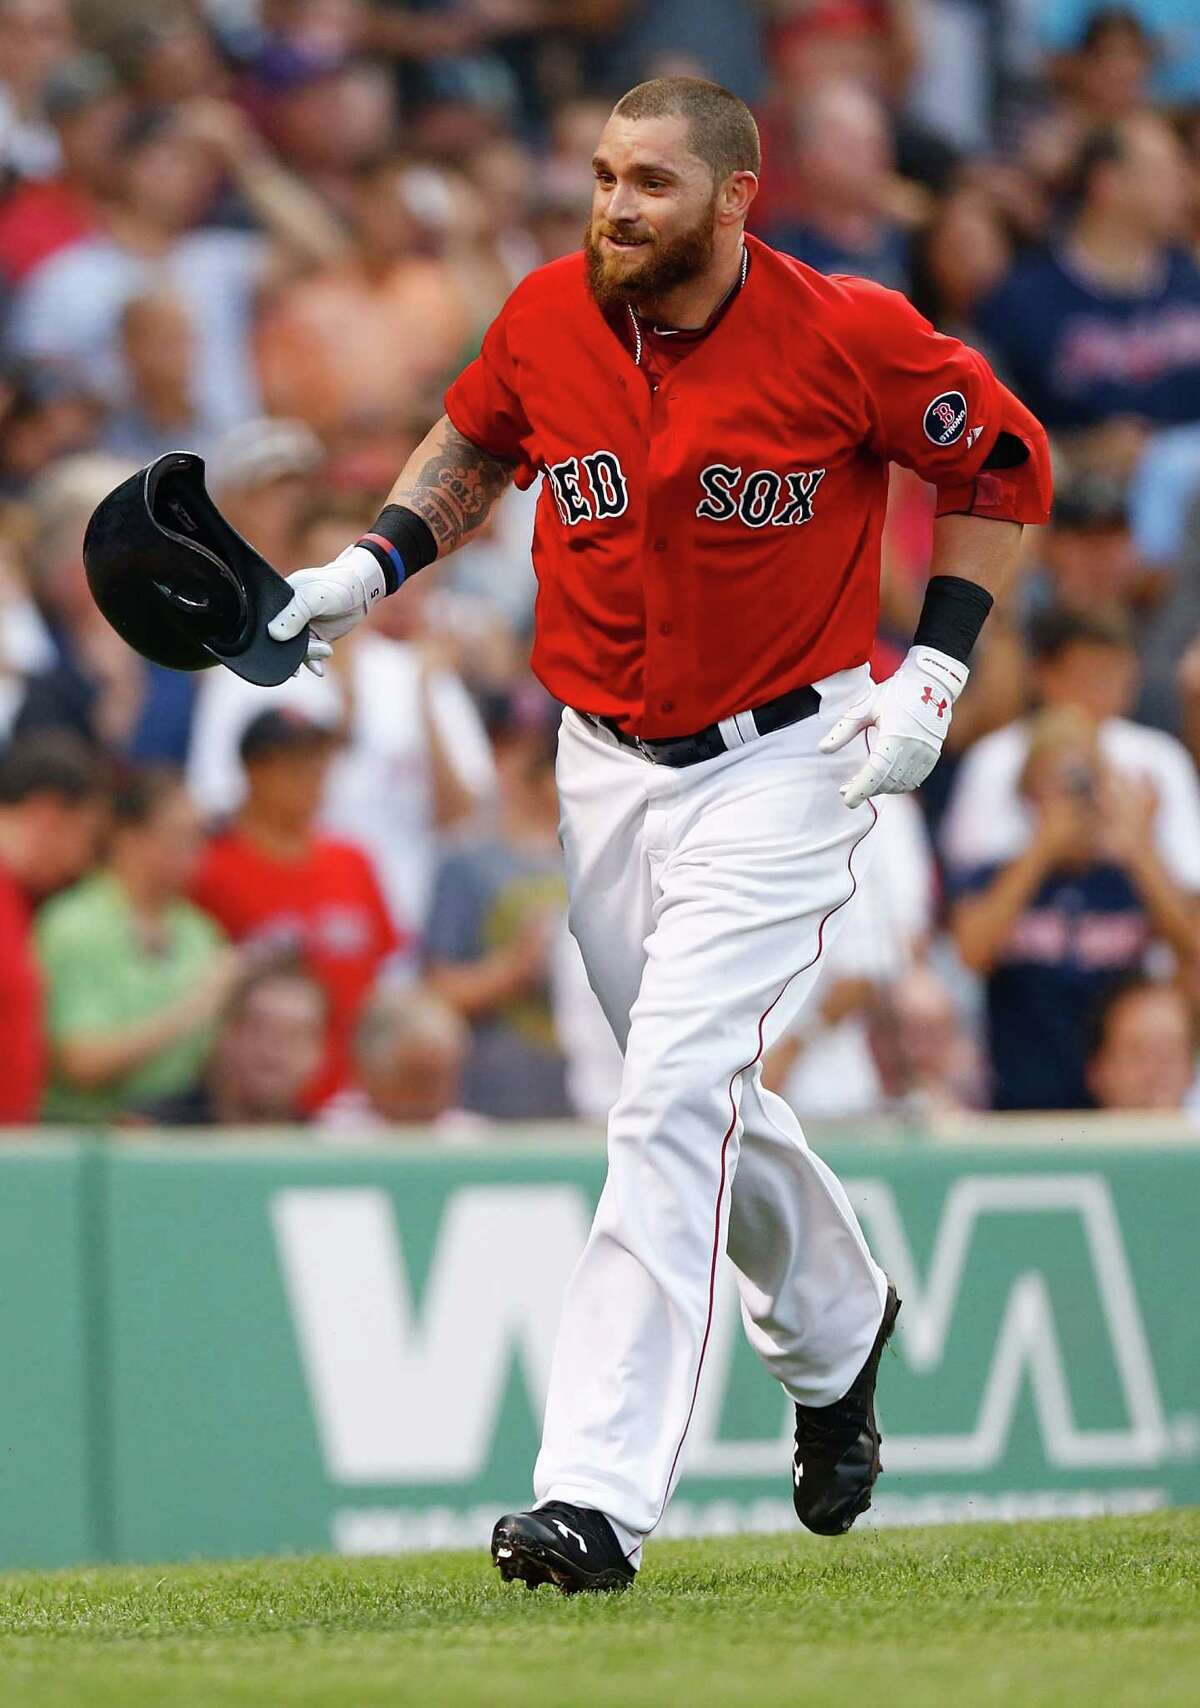 BOSTON, MA - JULY 19: Jonny Gomes #5 of the Boston Red Sox celebrates after hitting a two-run home run in the second inning off of Andy Pettitte #46 of the New York Yankees during the game on July 19, 2013 at Fenway Park in Boston, Massachusetts.